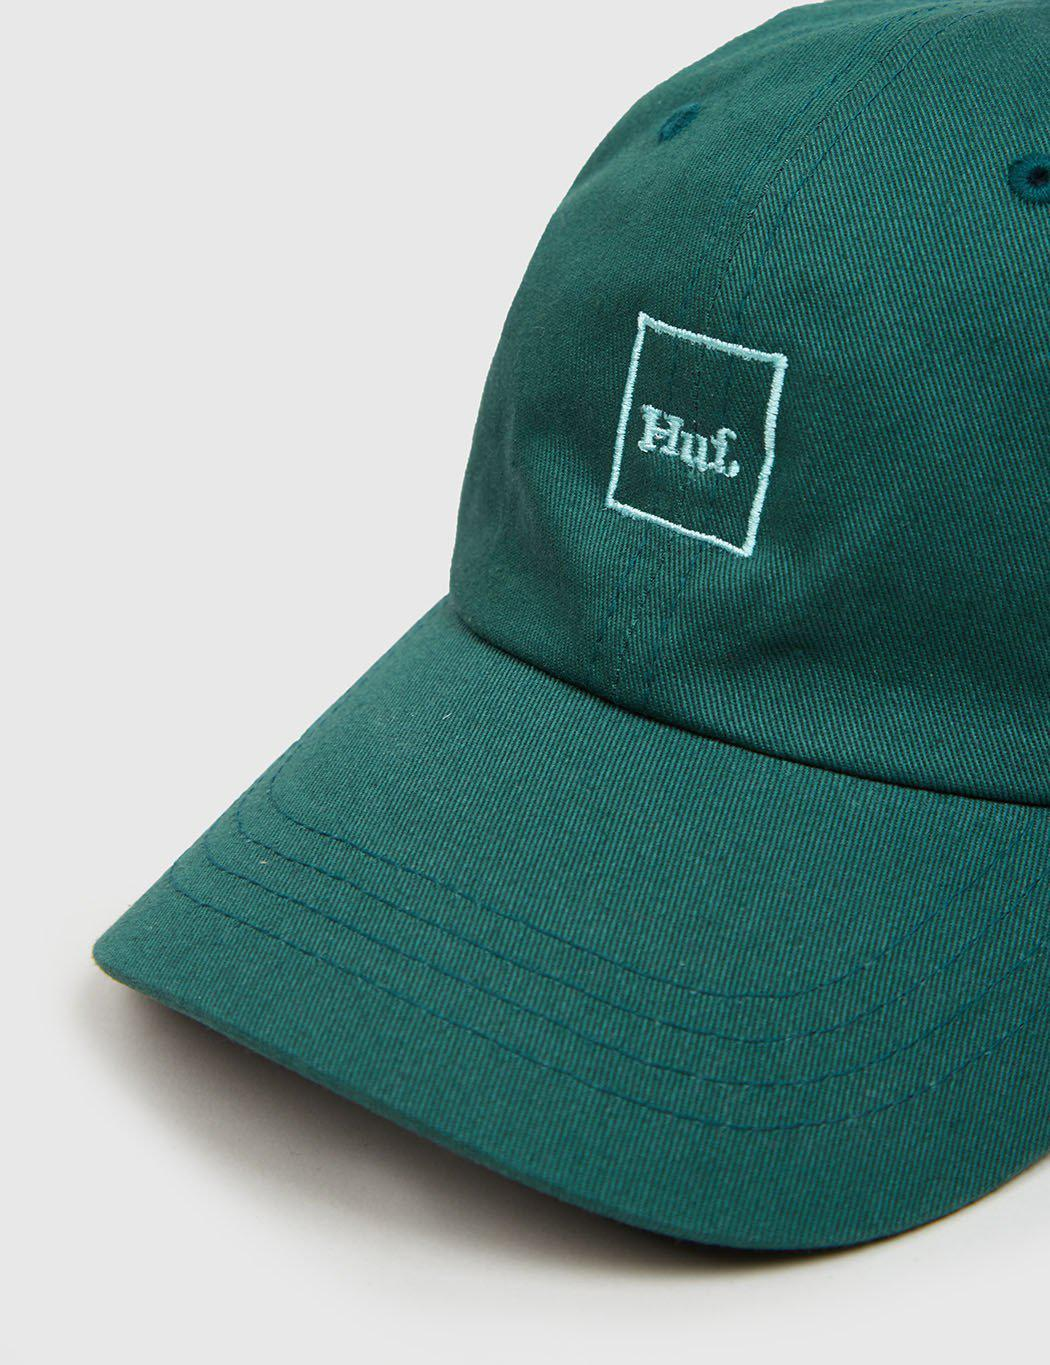 60ce04d6 Huf Domestic Logo Curved Peak Cap in Green for Men - Lyst